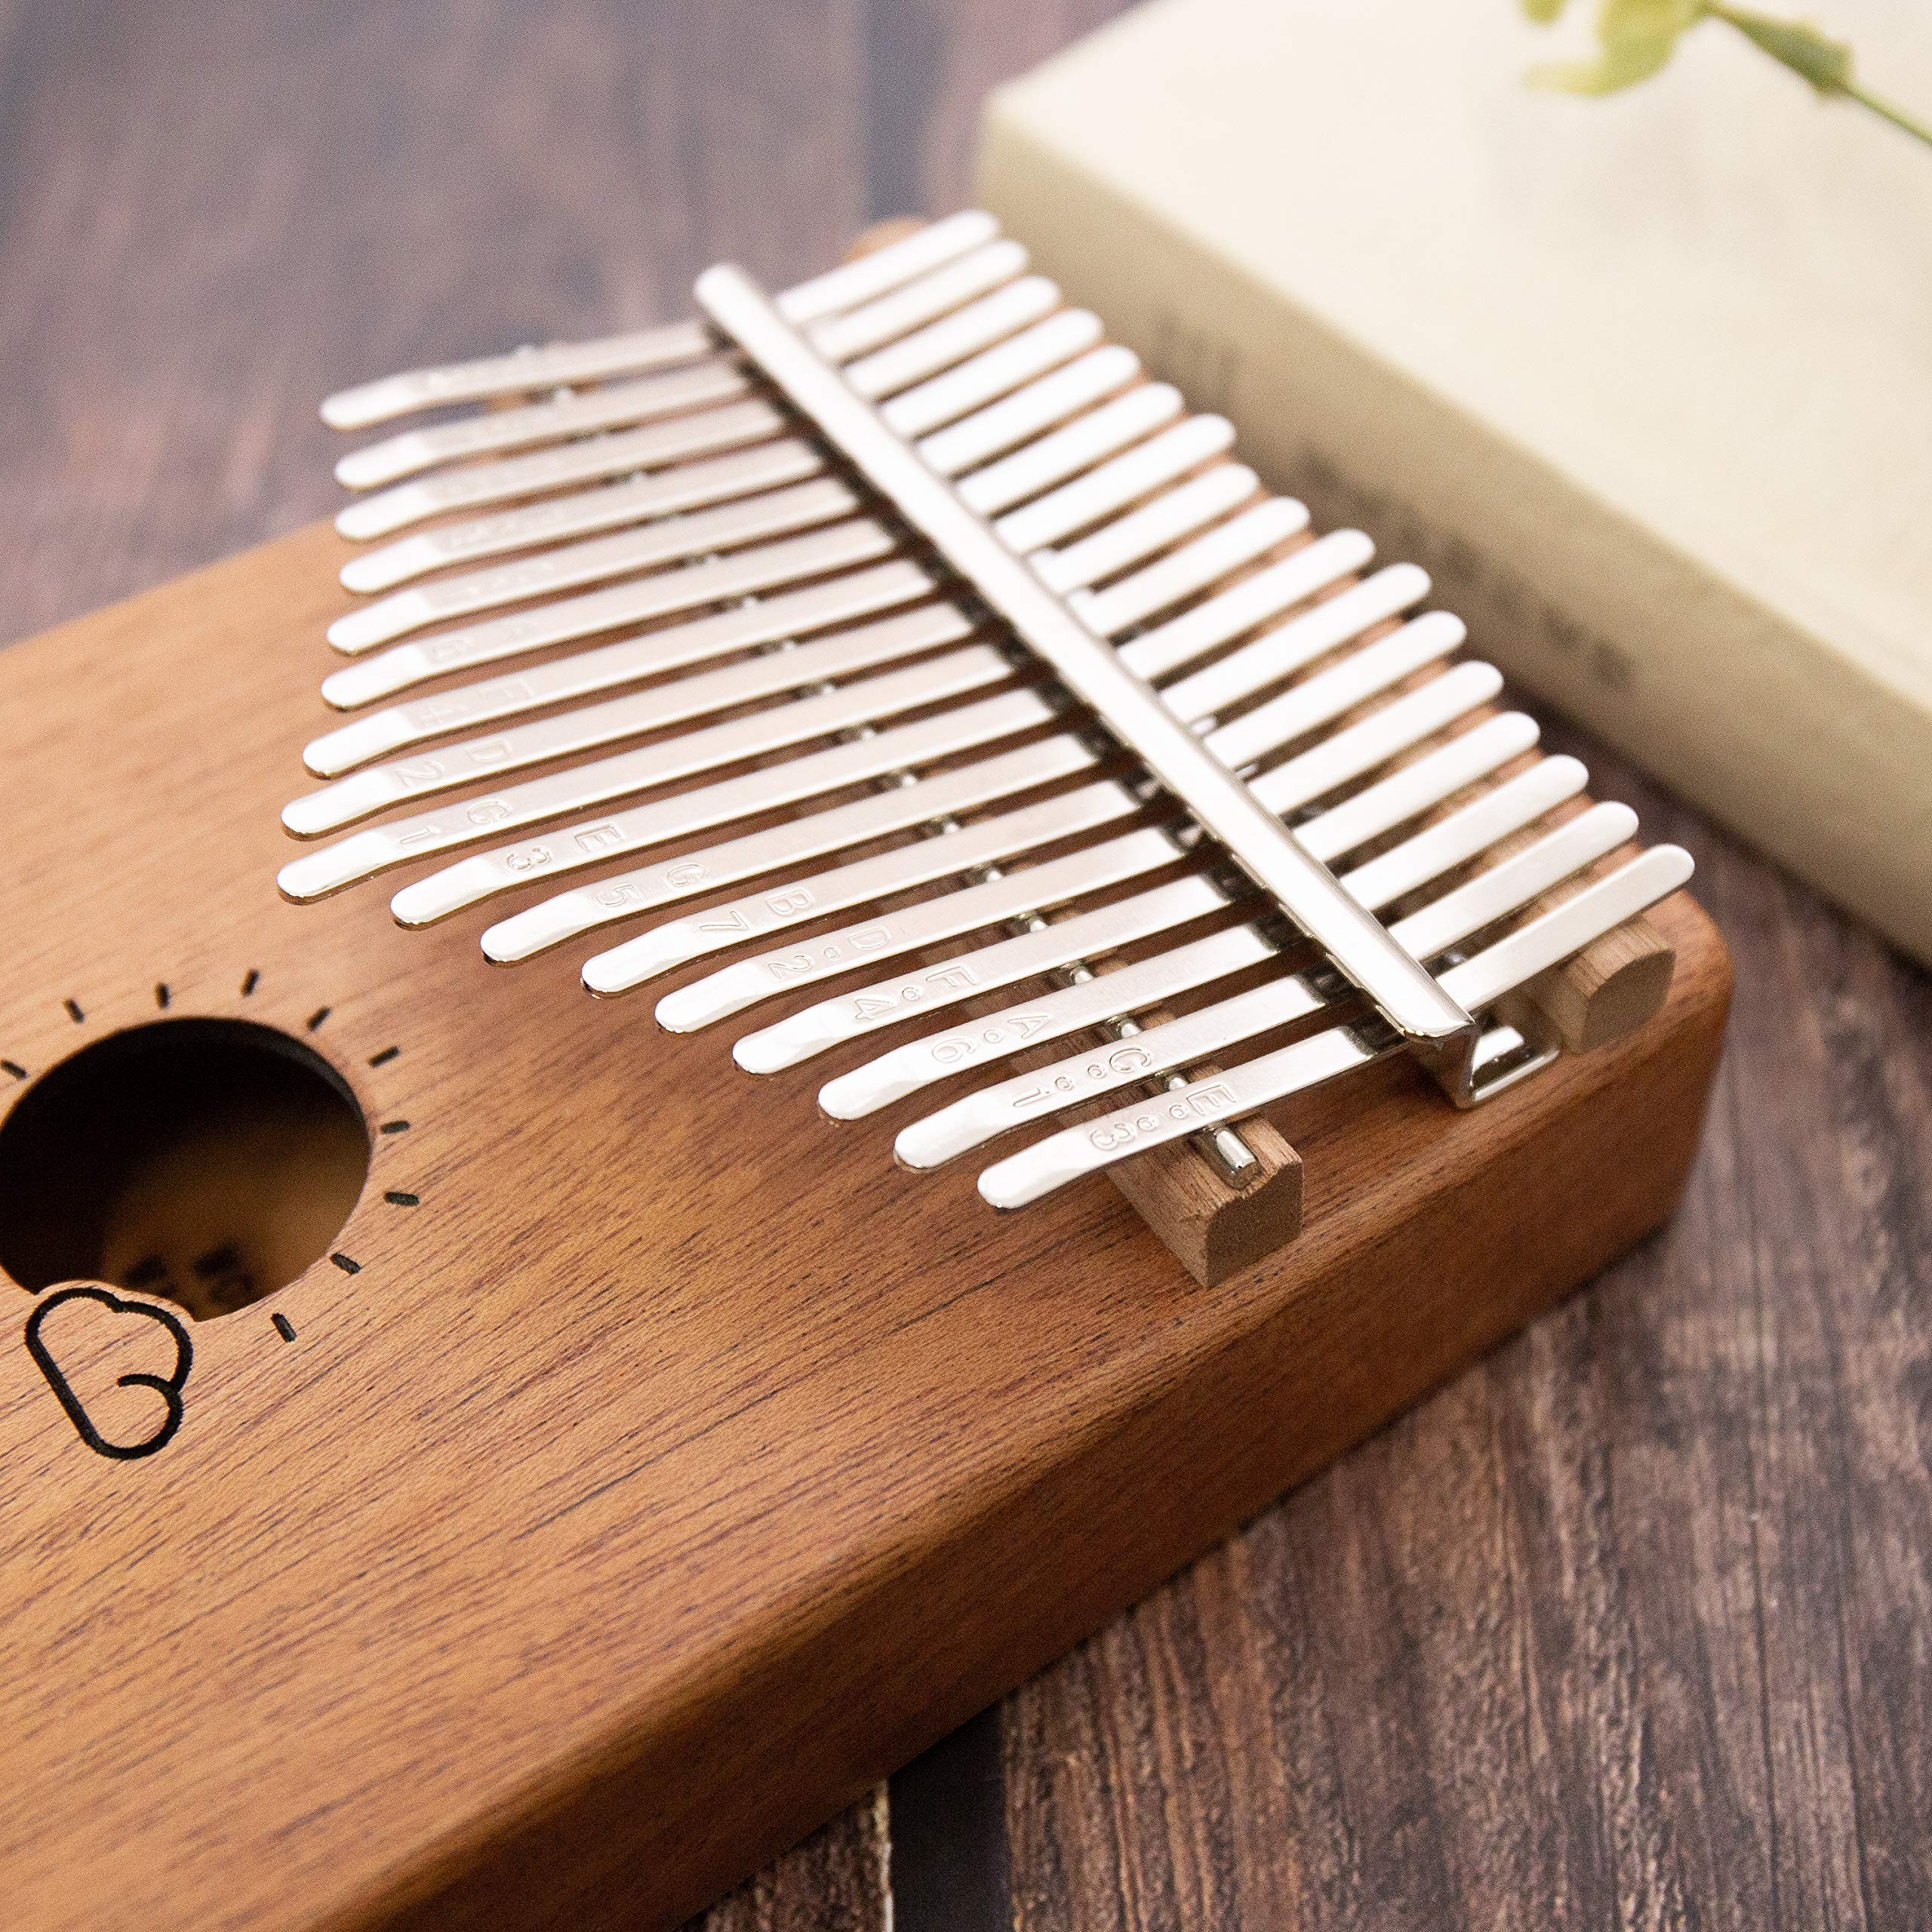 Kalimba 17 Keys Thumb Finger Piano - Mbira - Solid Mahogany and Portable with Carrying Bag and Instructions by GSM Brands (Image #3)